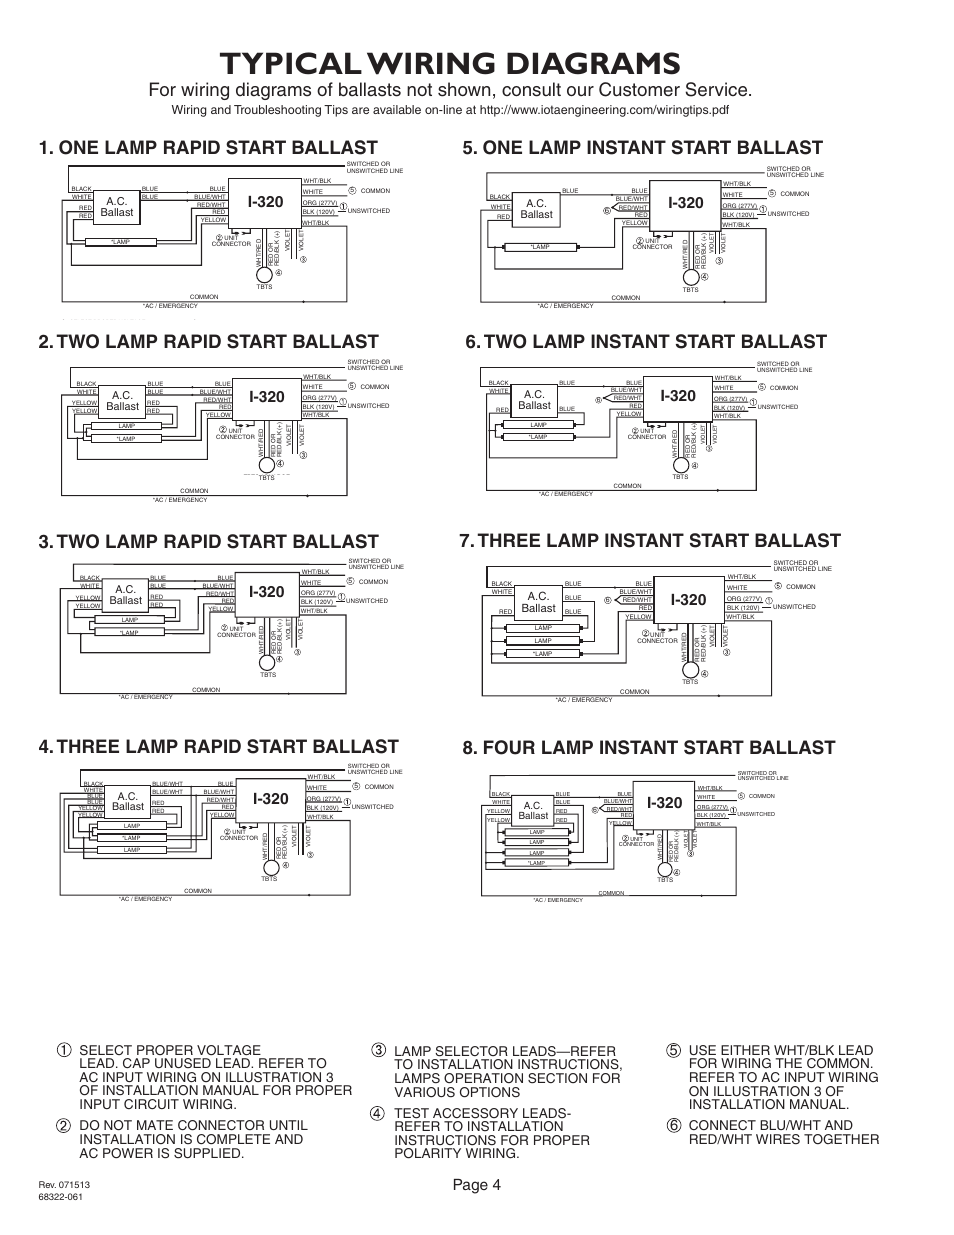 iota i 320 page4?resize=840%2C1087 iota emergency ballast wiring diagram periodic & diagrams science iota isl 540 wiring diagram at gsmportal.co